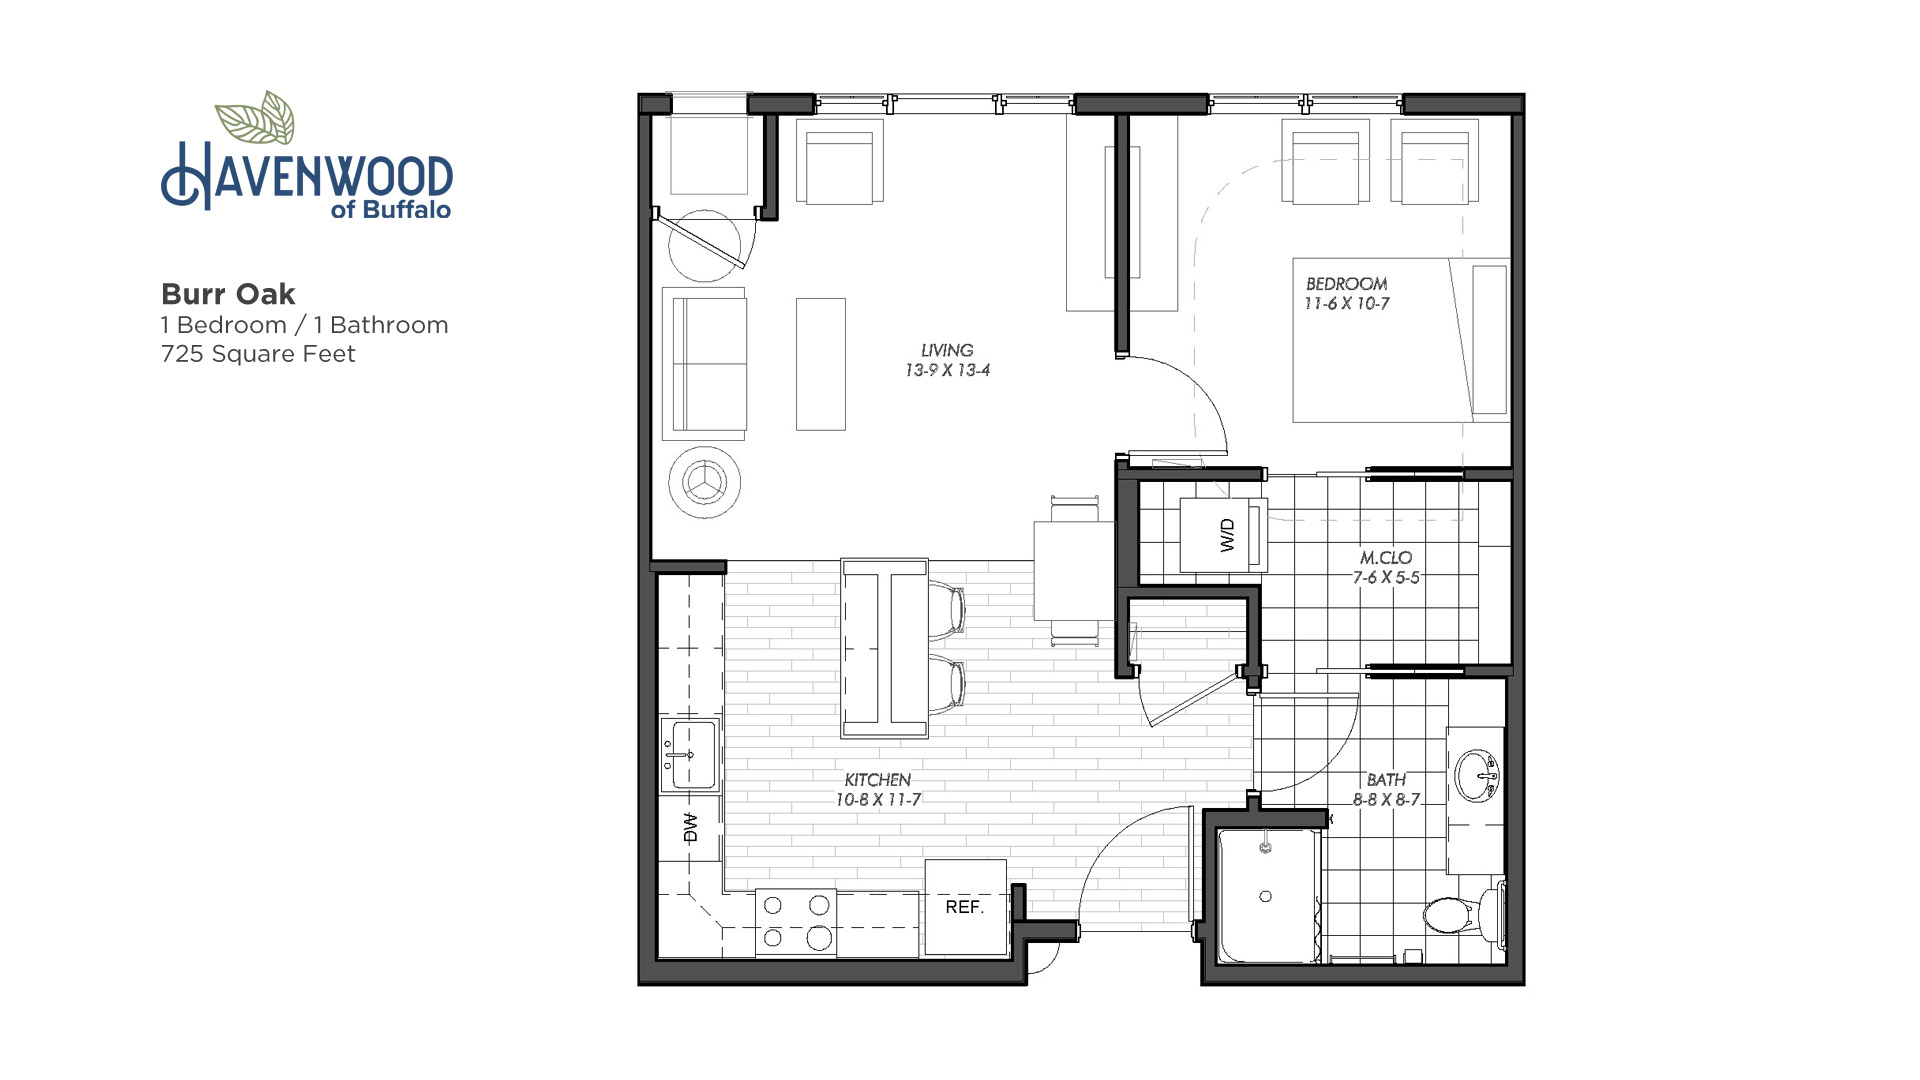 Havenwood of Buffalo Burr Oak Floor Plan